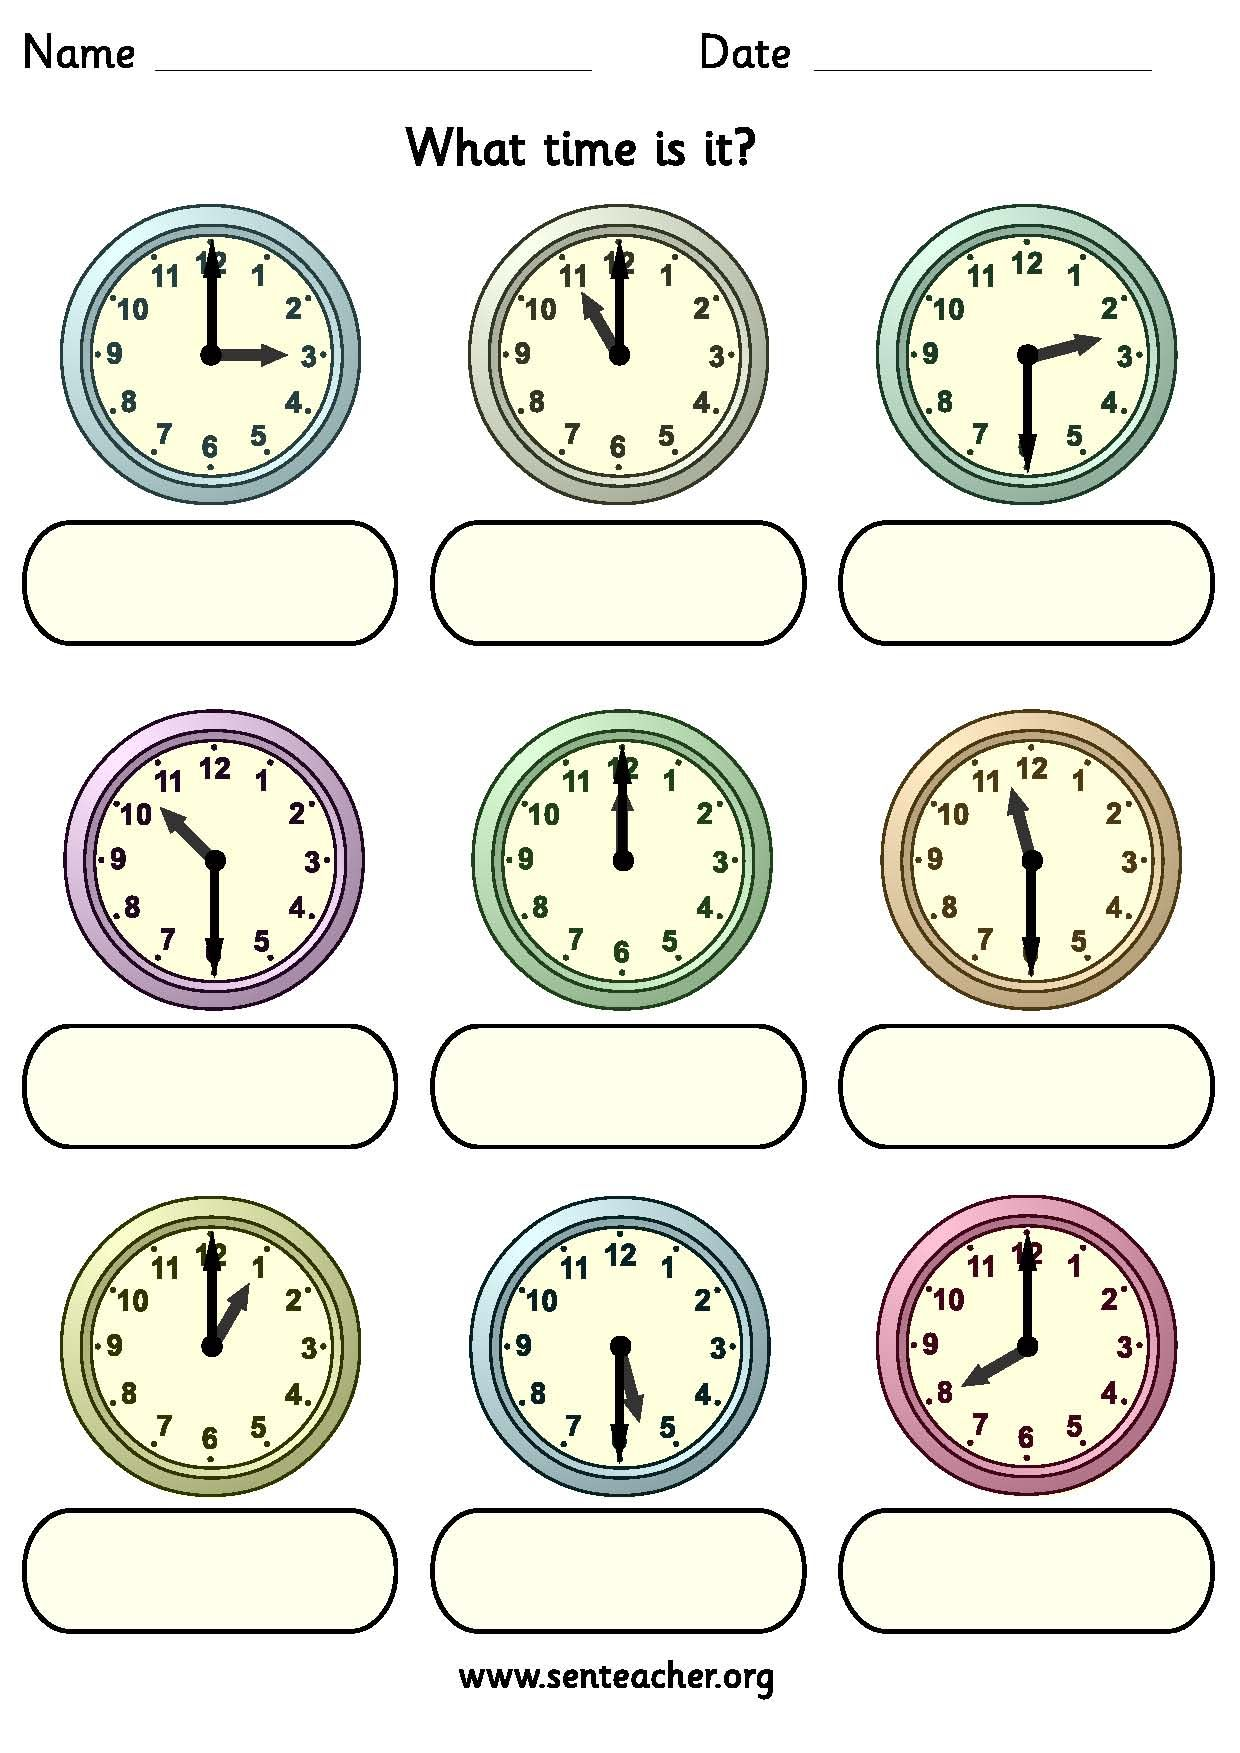 Worksheet containing 9 analogue clocks showing oclock or half – Clock Worksheets